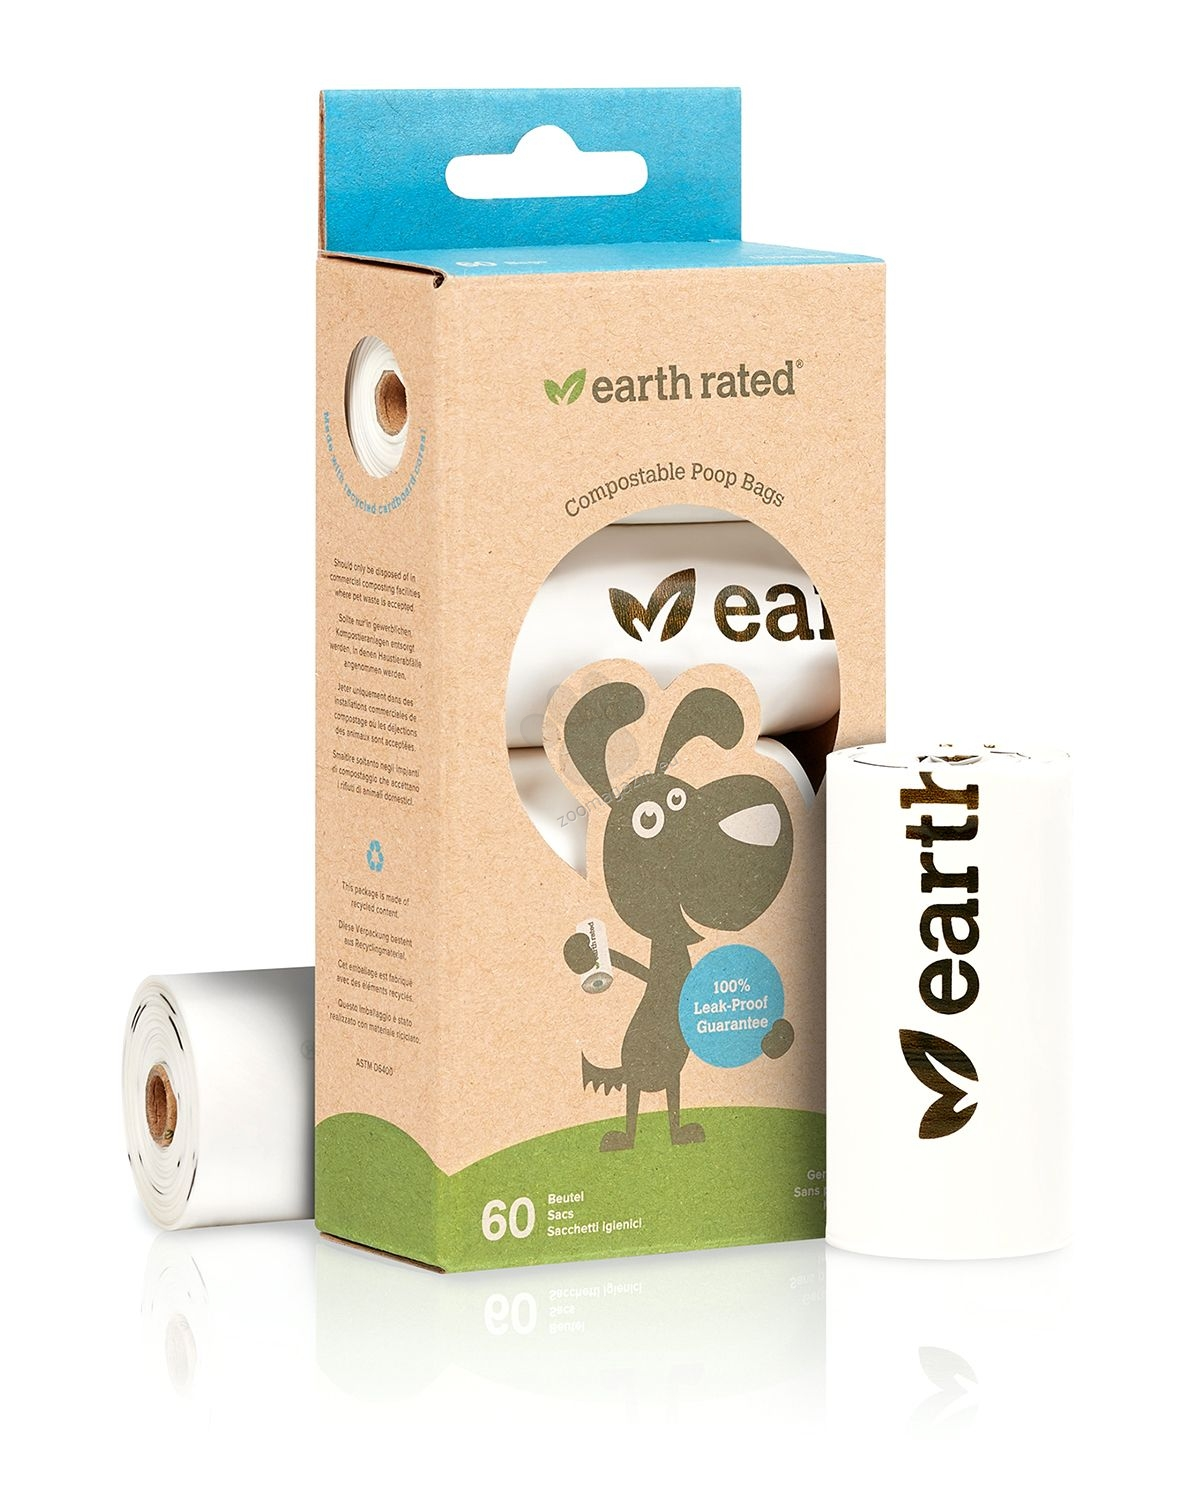 Earth Rated - Compostable Refill Rolls - био бързоразградими пликове 4 ролки по 15 броя